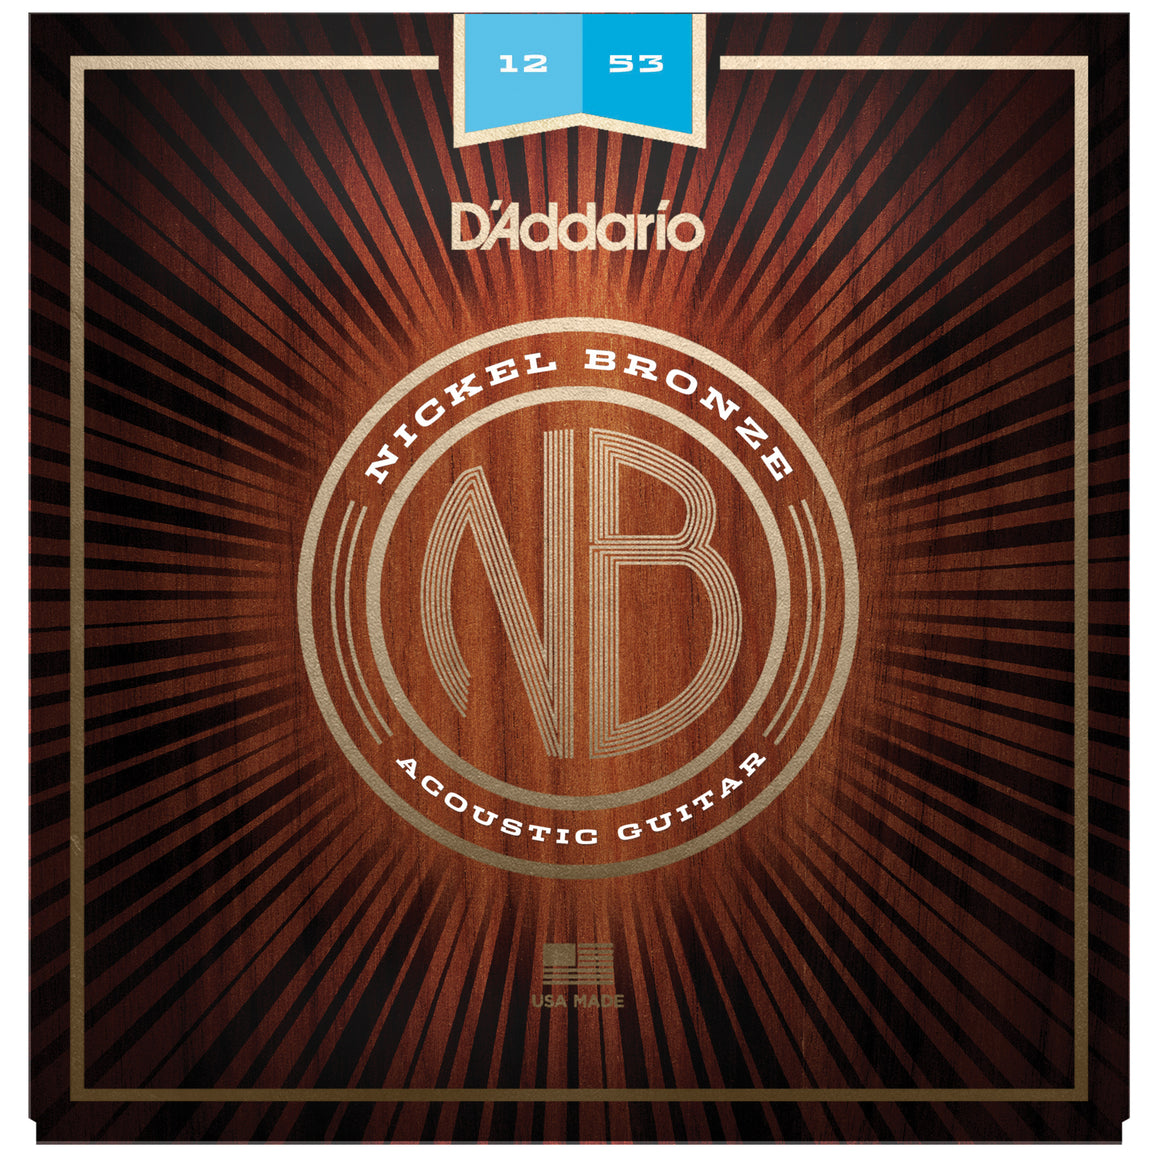 D'Addario NB1253 12-53 Nickel Bronze Light Acoustic Guitar Strings